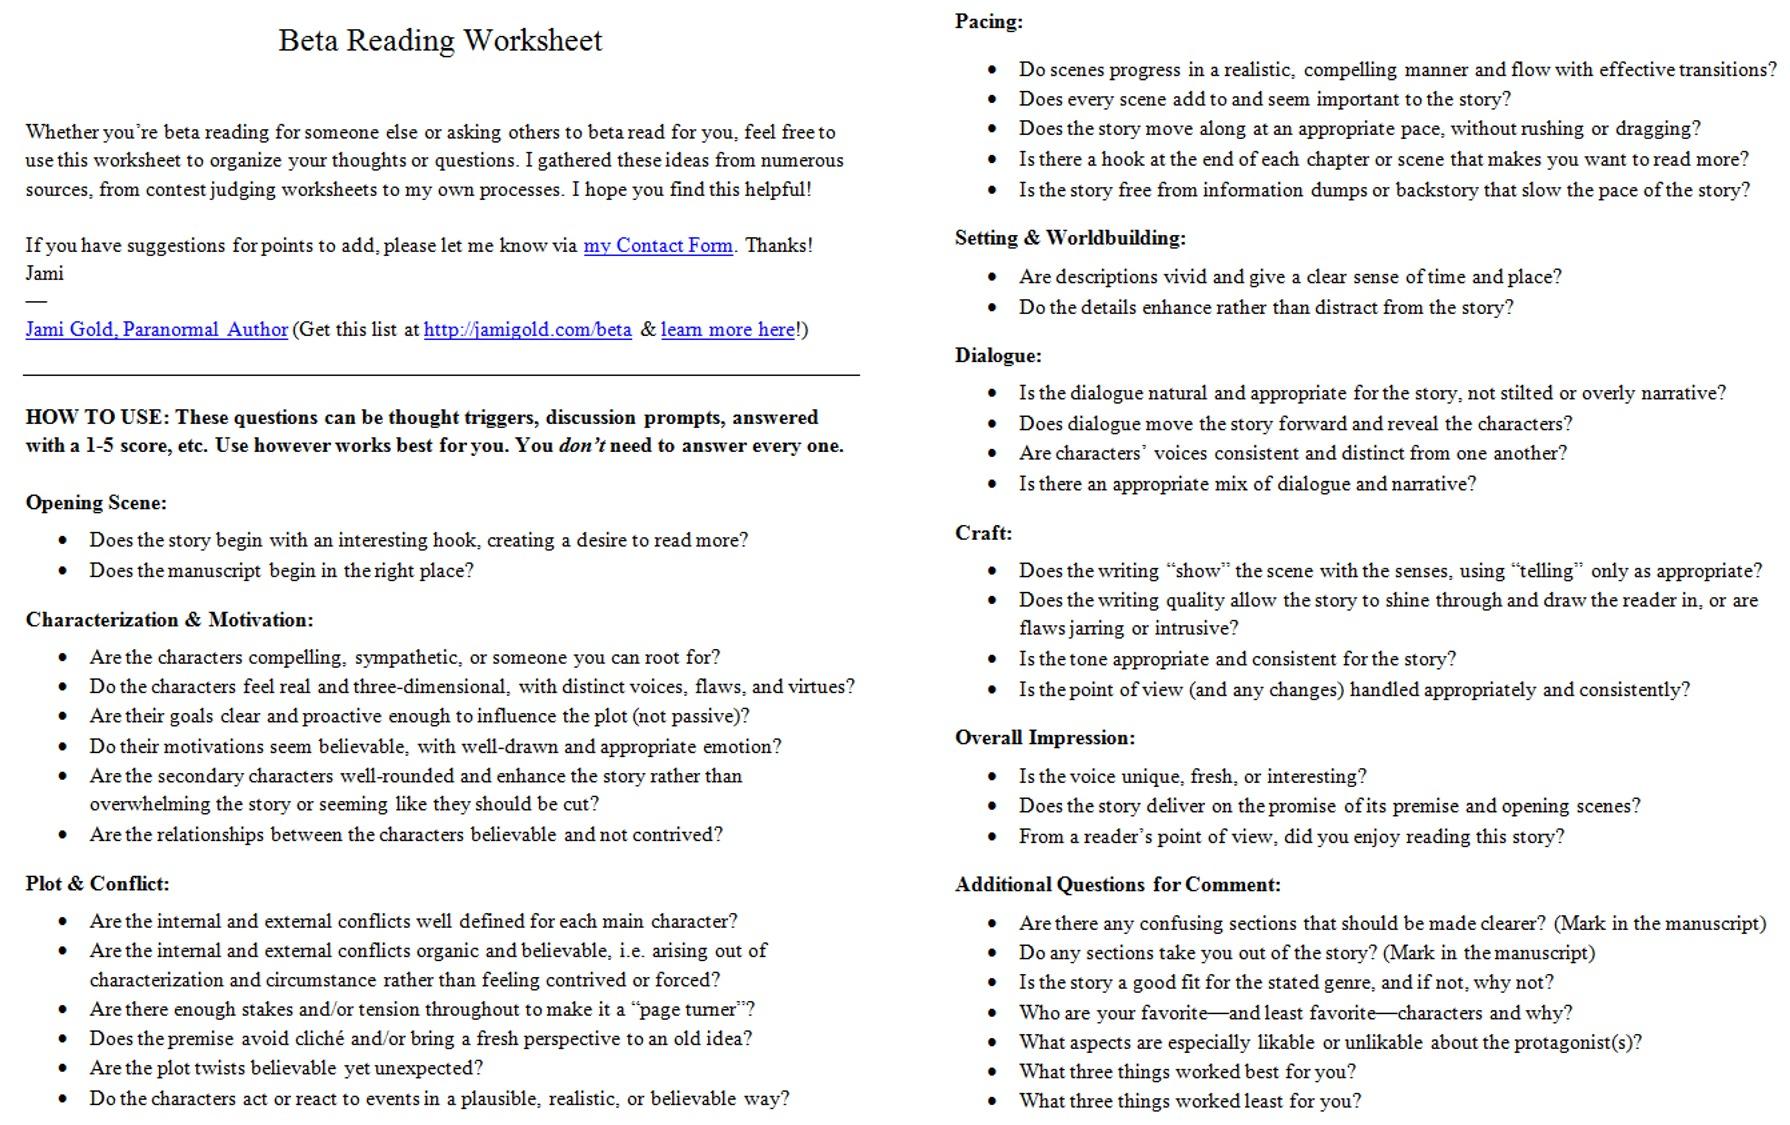 Proatmealus  Remarkable Worksheets For Writers  Jami Gold Paranormal Author With Exciting Screen Shot Of The Twopage Beta Reading Worksheet With Delectable Worksheets On Rotations Also Letter H Handwriting Worksheets In Addition Handwriting Worksheets Ks And Worksheet Adding Fractions As Well As Cut And Paste Sorting Worksheets Additionally Vowel Sound Worksheet From Jamigoldcom With Proatmealus  Exciting Worksheets For Writers  Jami Gold Paranormal Author With Delectable Screen Shot Of The Twopage Beta Reading Worksheet And Remarkable Worksheets On Rotations Also Letter H Handwriting Worksheets In Addition Handwriting Worksheets Ks From Jamigoldcom